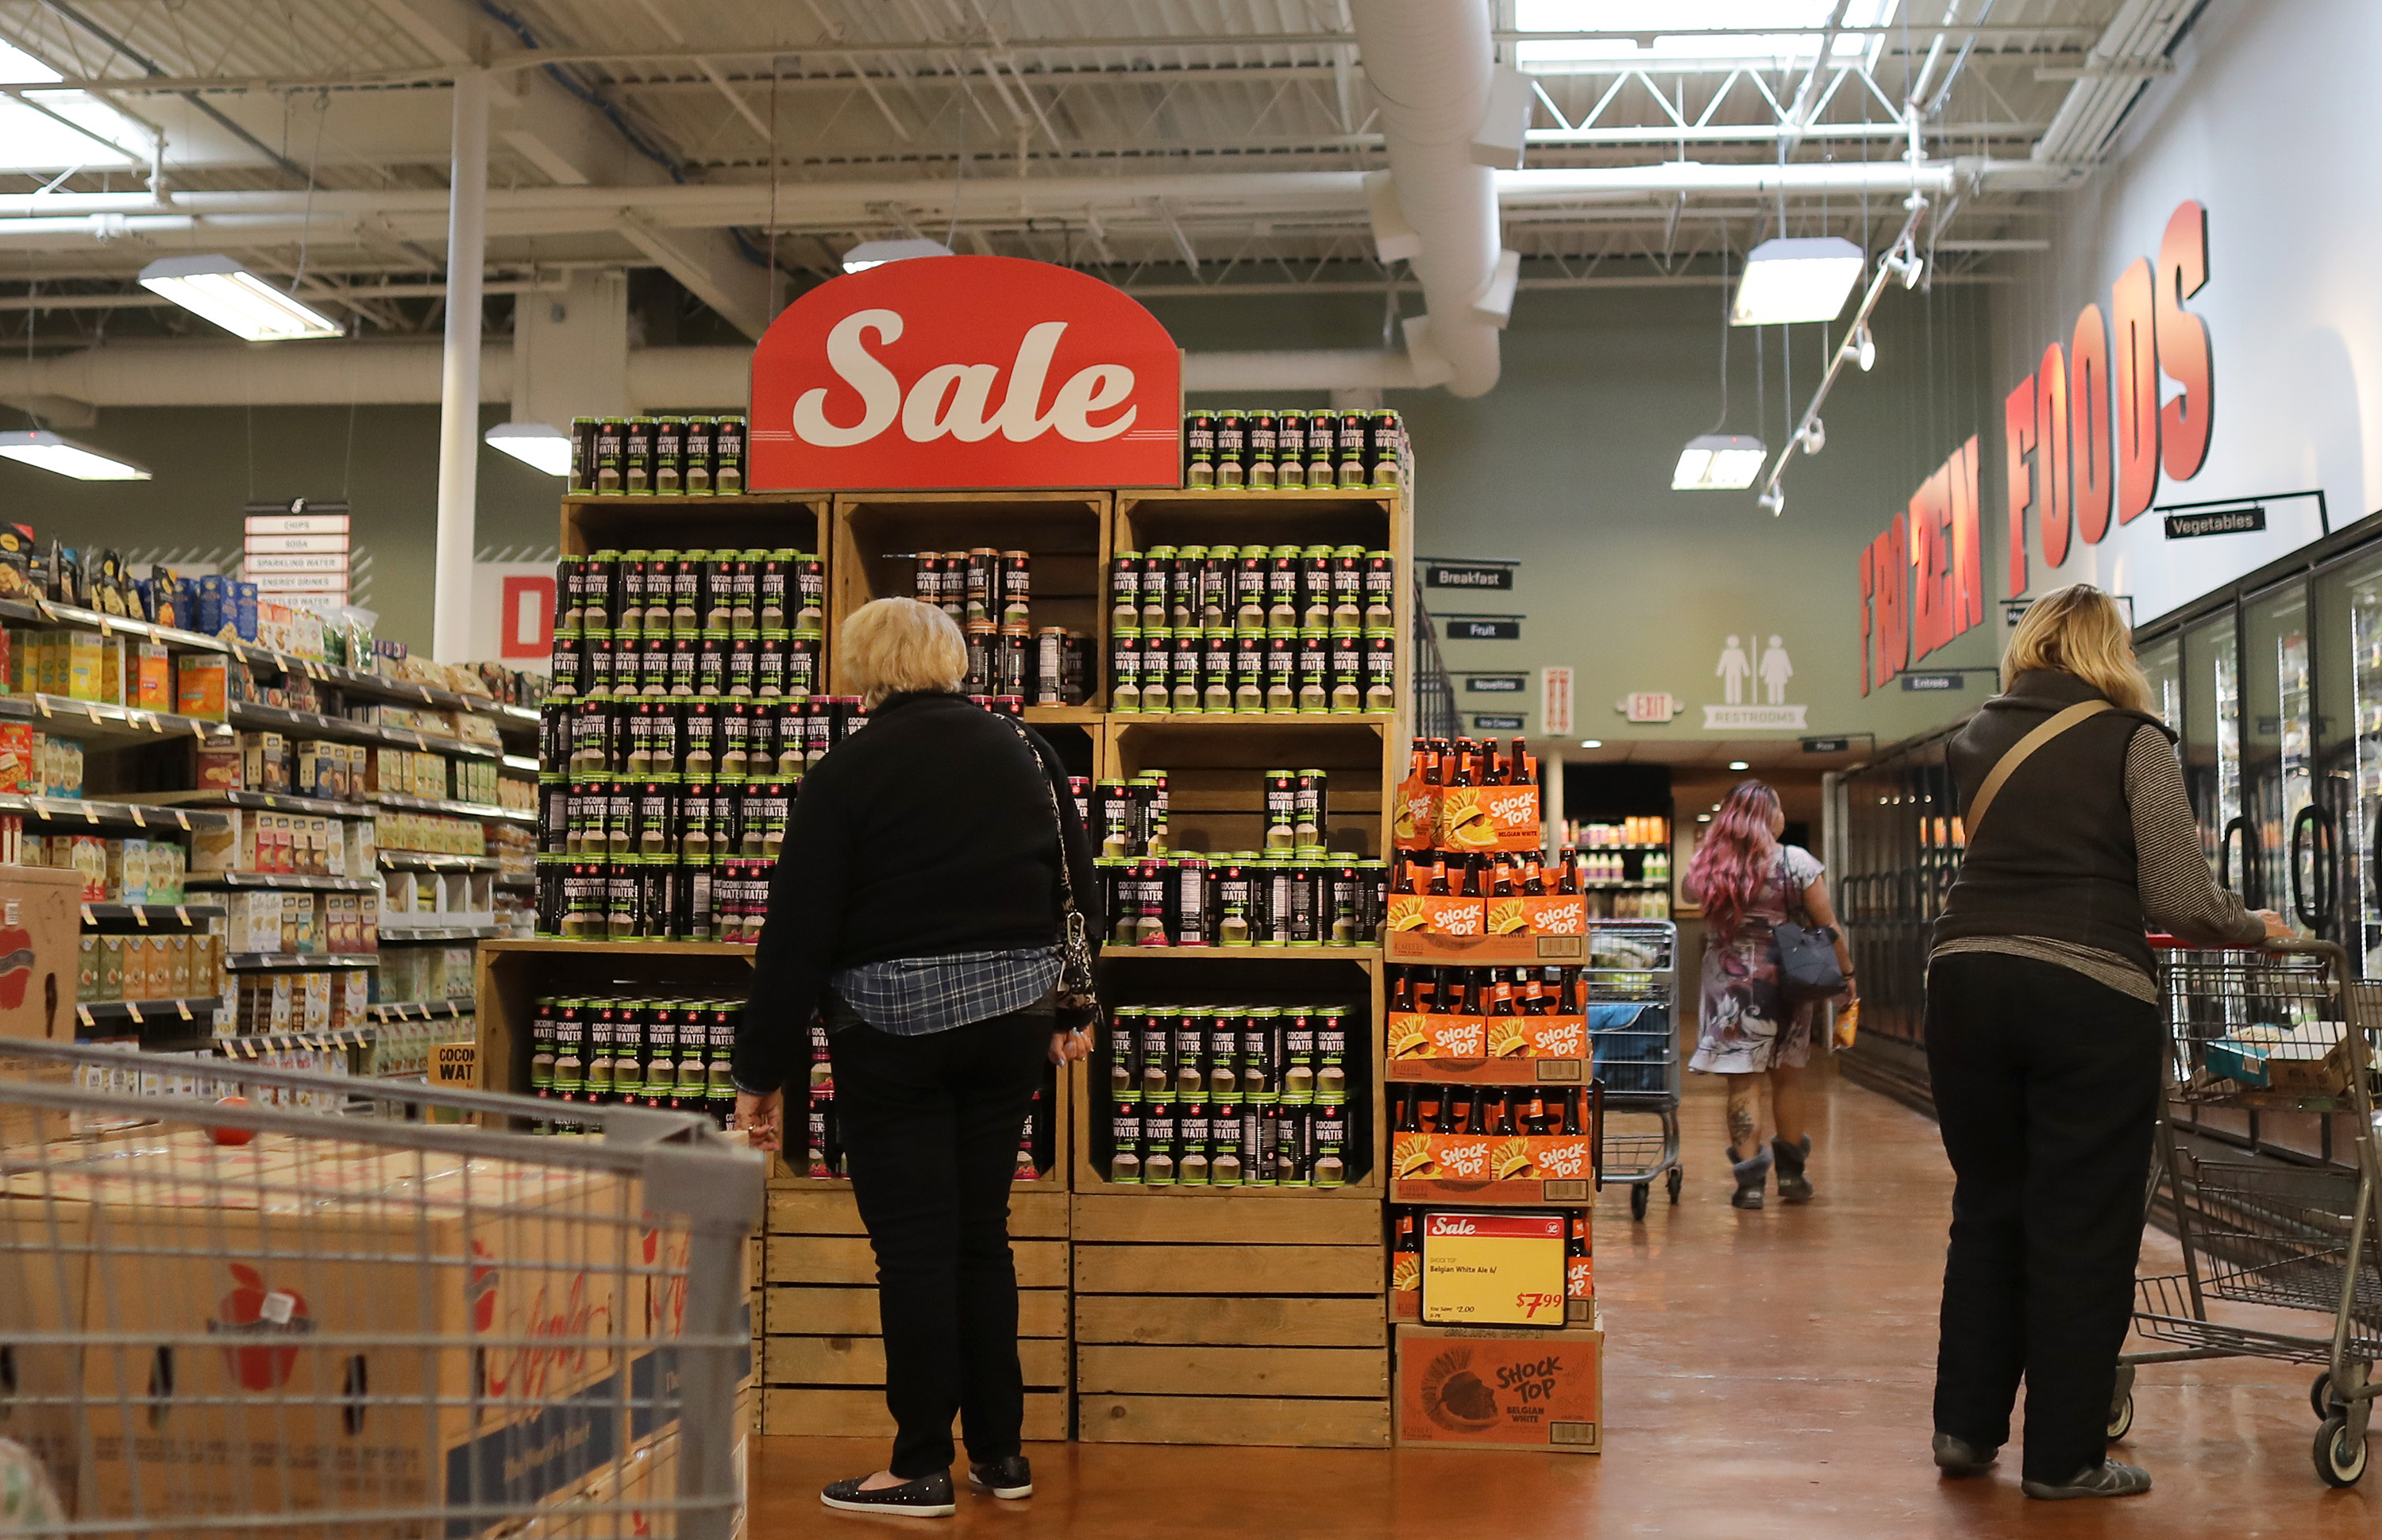 This grocery store wanted to compete with Whole Foods. Now it's going bankrupt